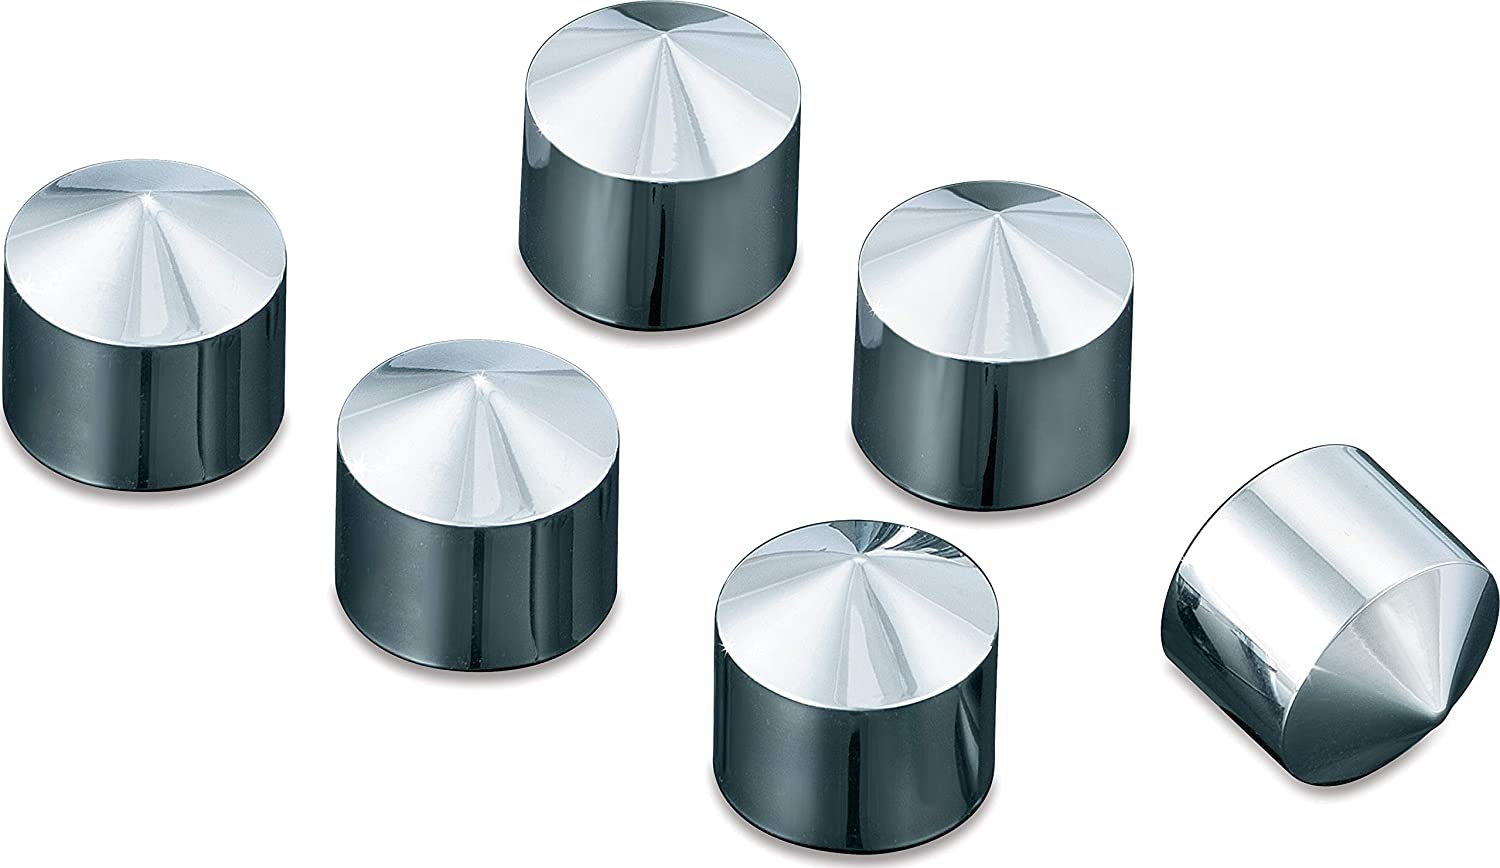 Peaked Rocker Box Bolt Cover Caps for 1999-2019 Harley-Davidson Motorcycles Pack of 4 Kuryakyn 8372 Motorcycle Accent Accessory Chrome